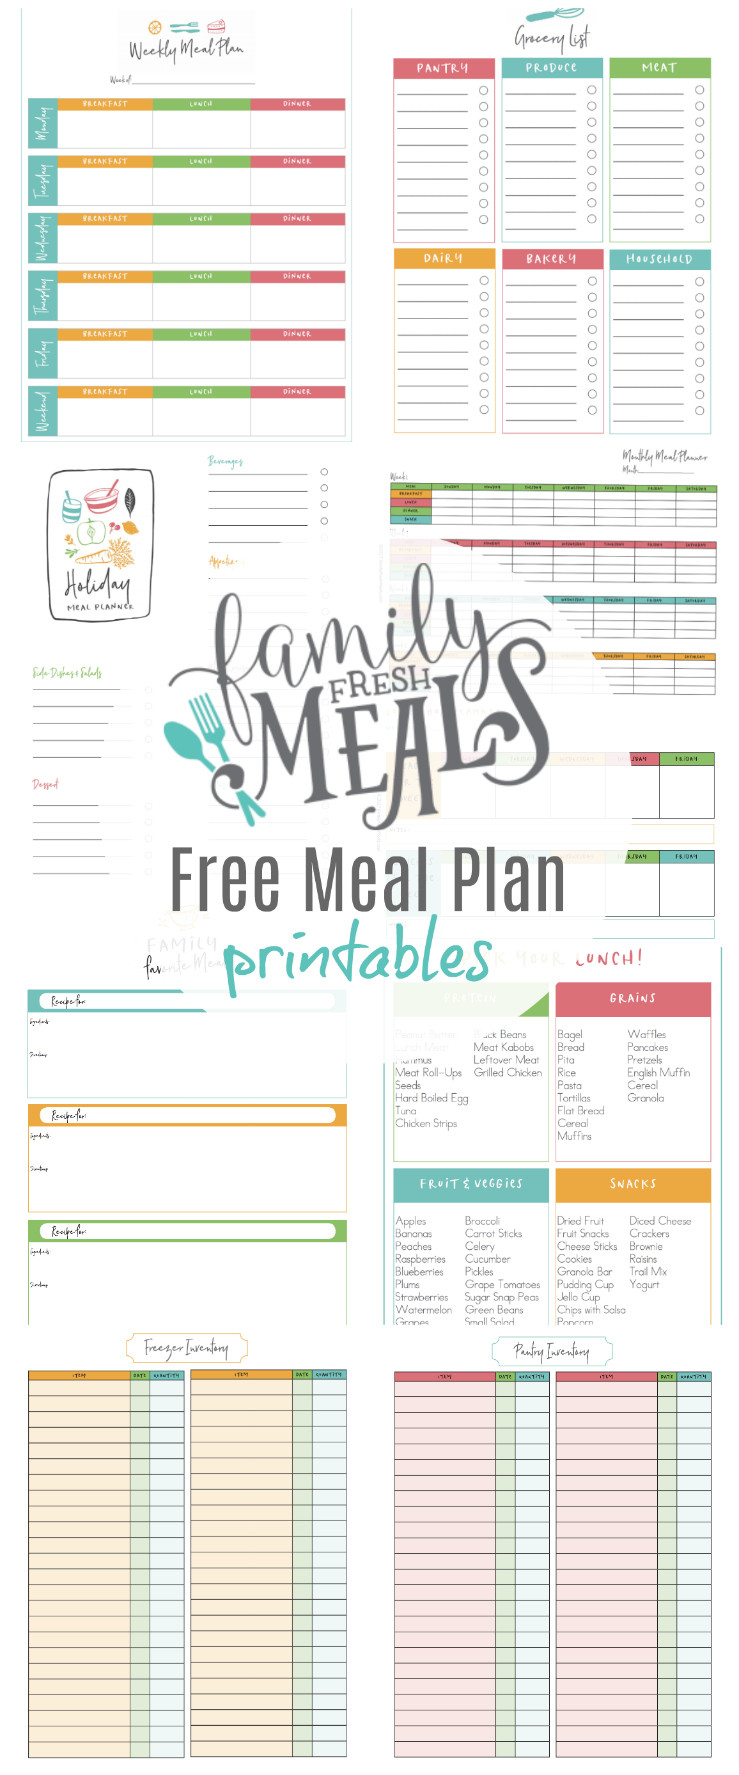 Daily Meal Plan Template